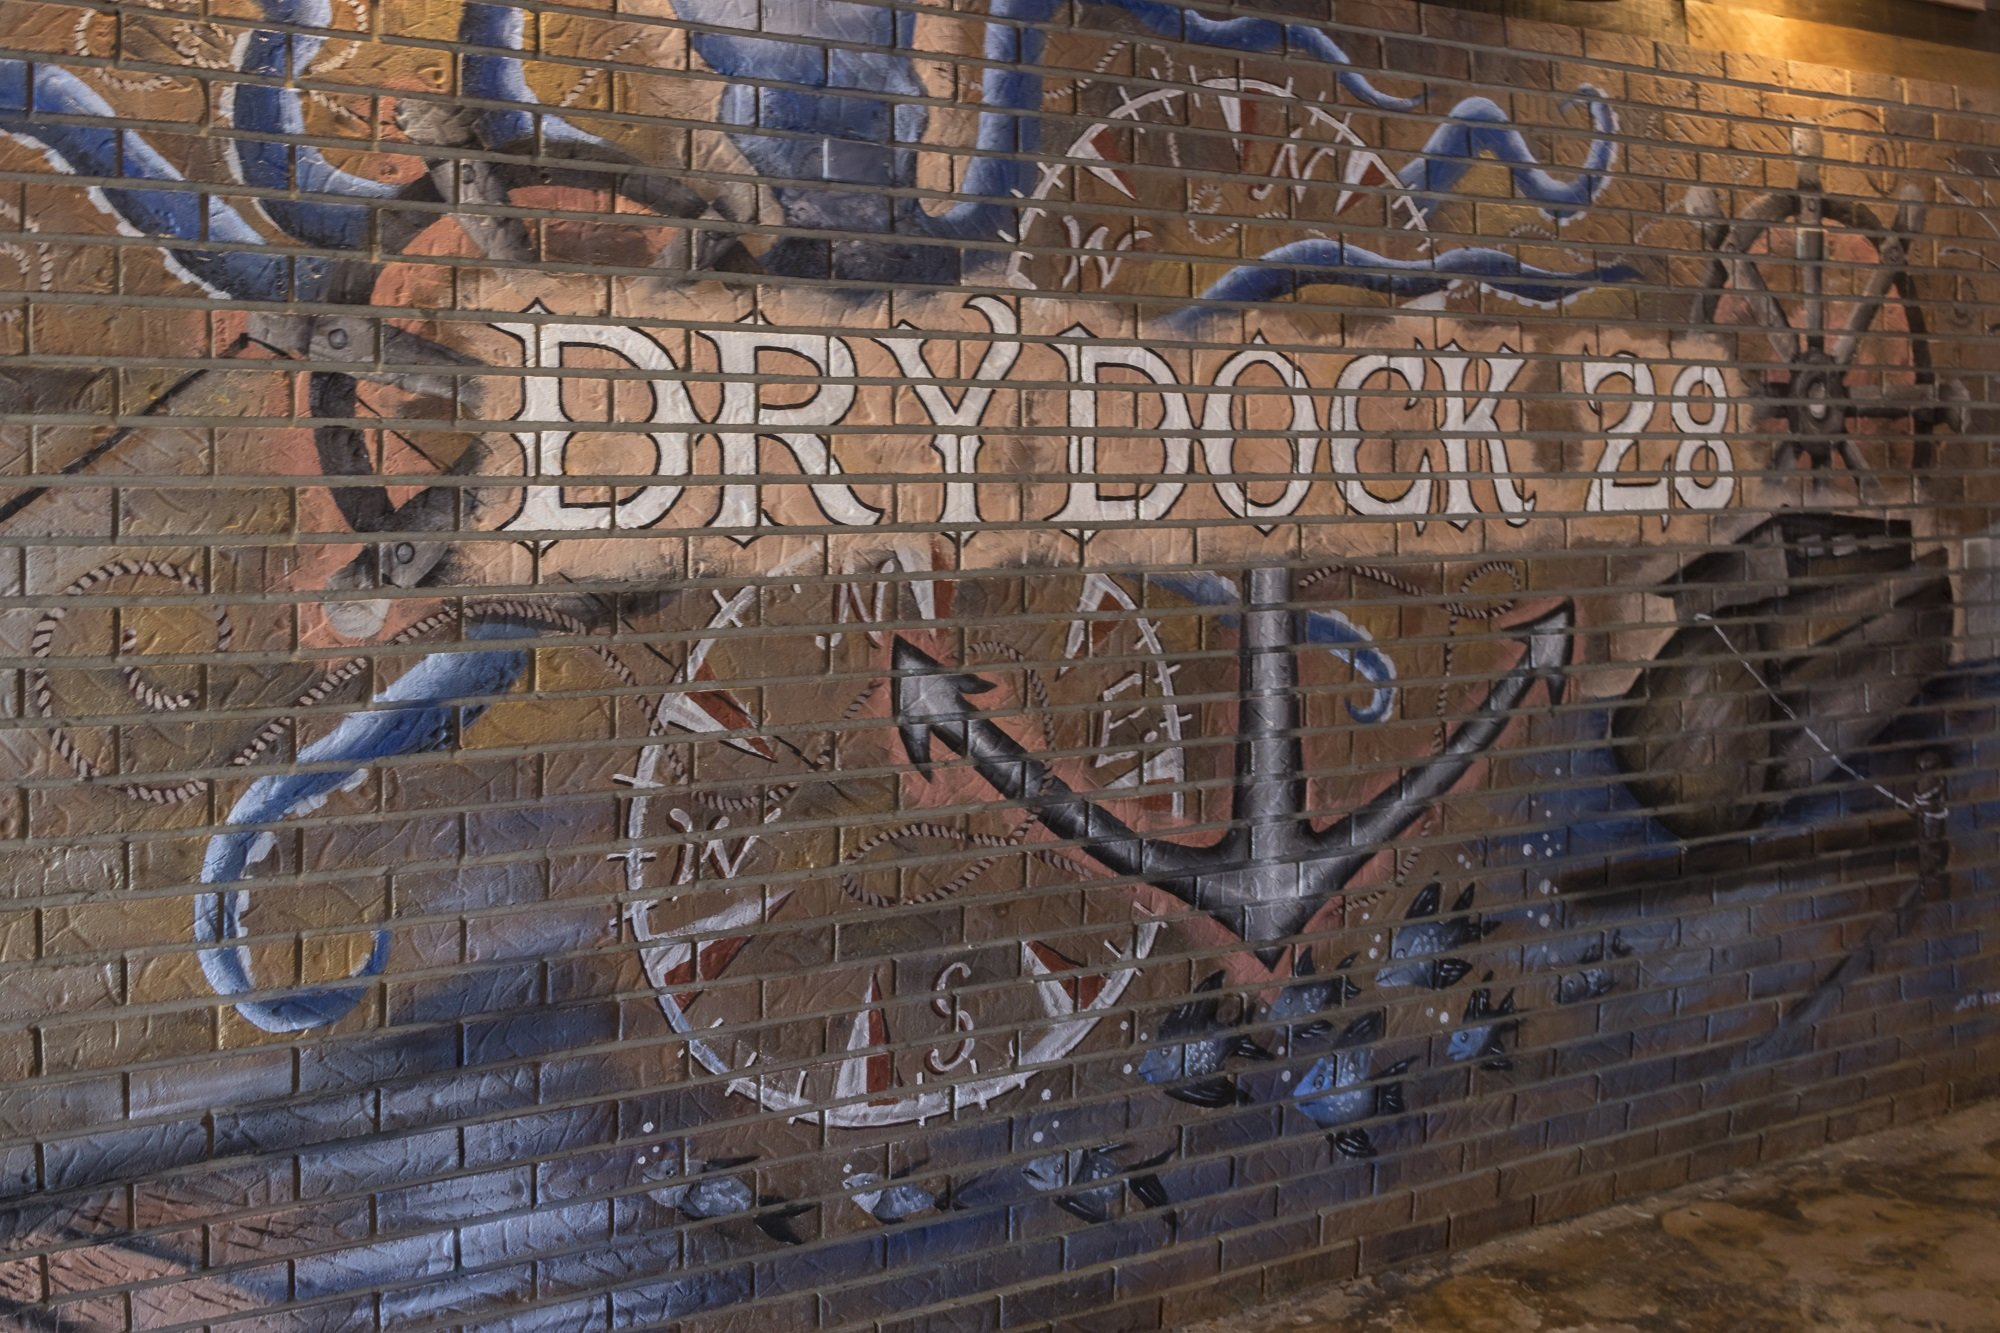 The New Dry Dock 28 in Ocean City, MD